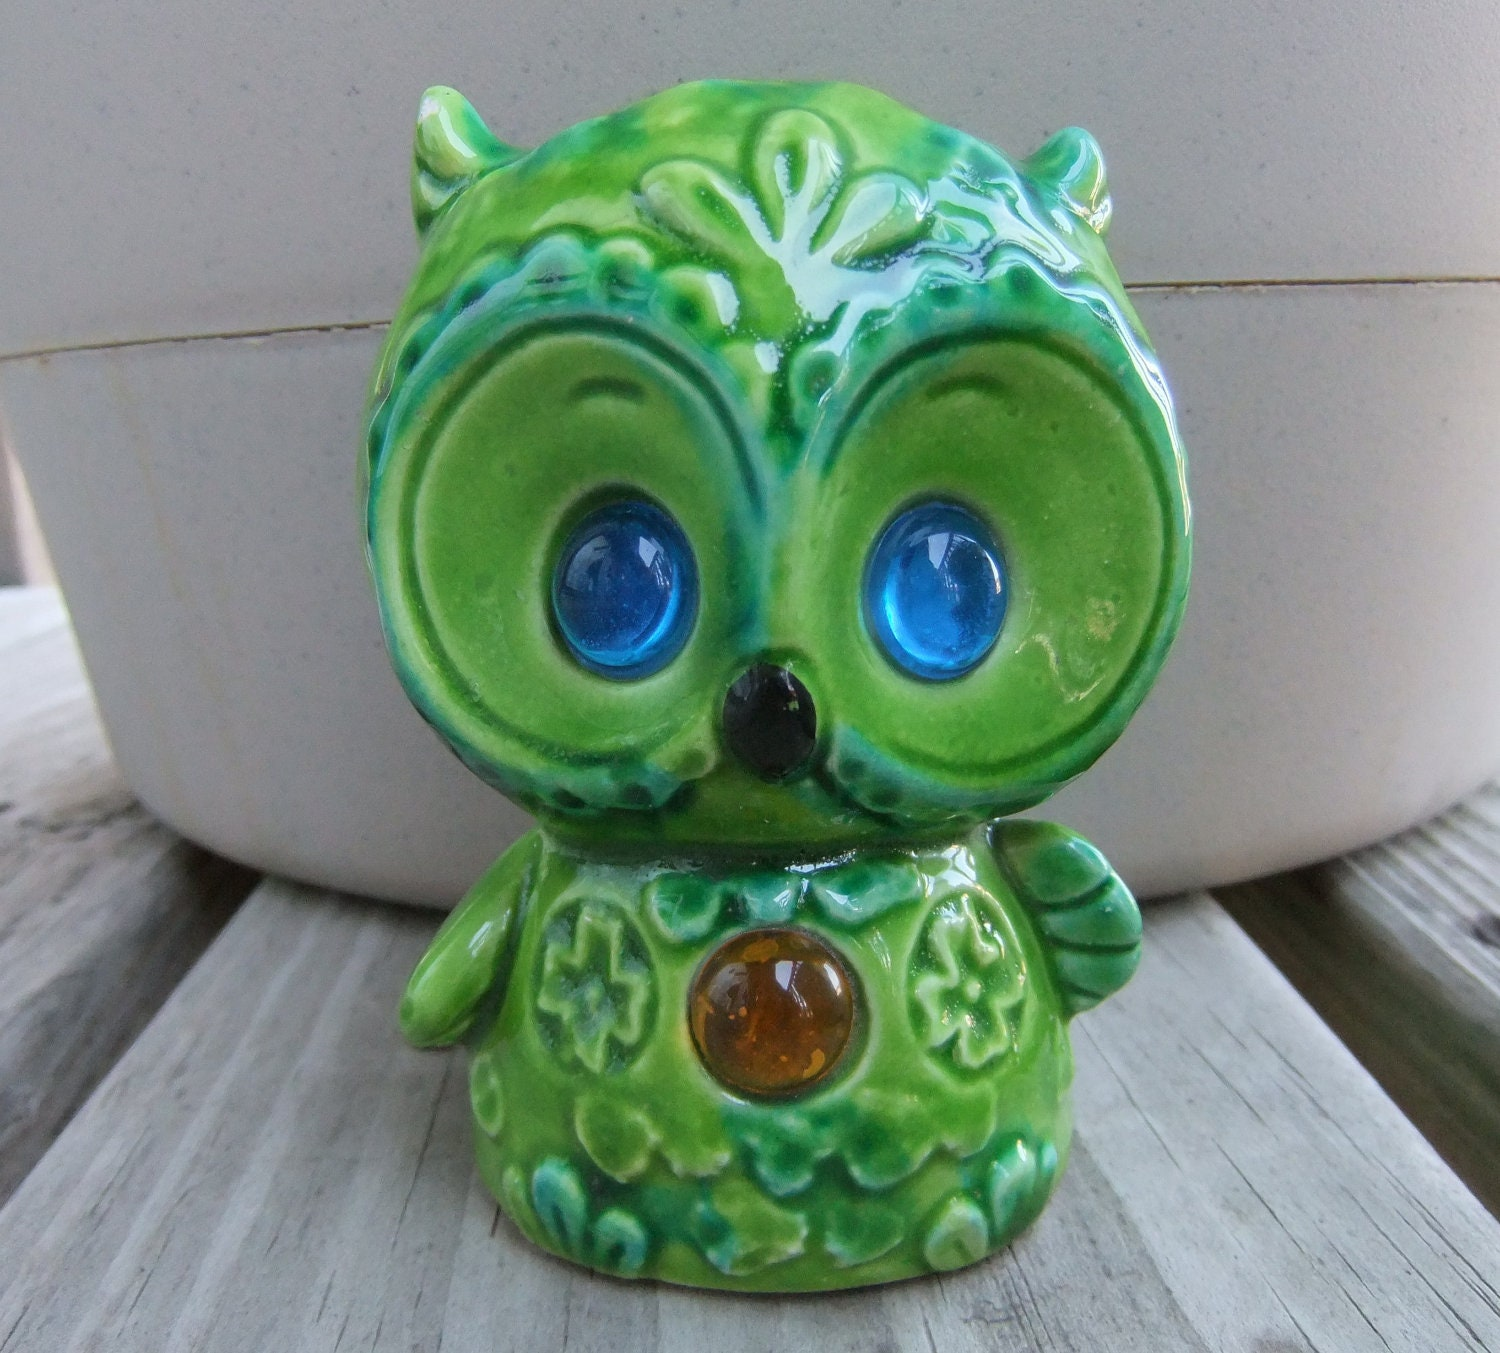 Vintage Owl Figurine Green Ceramic Owl Home Decor By